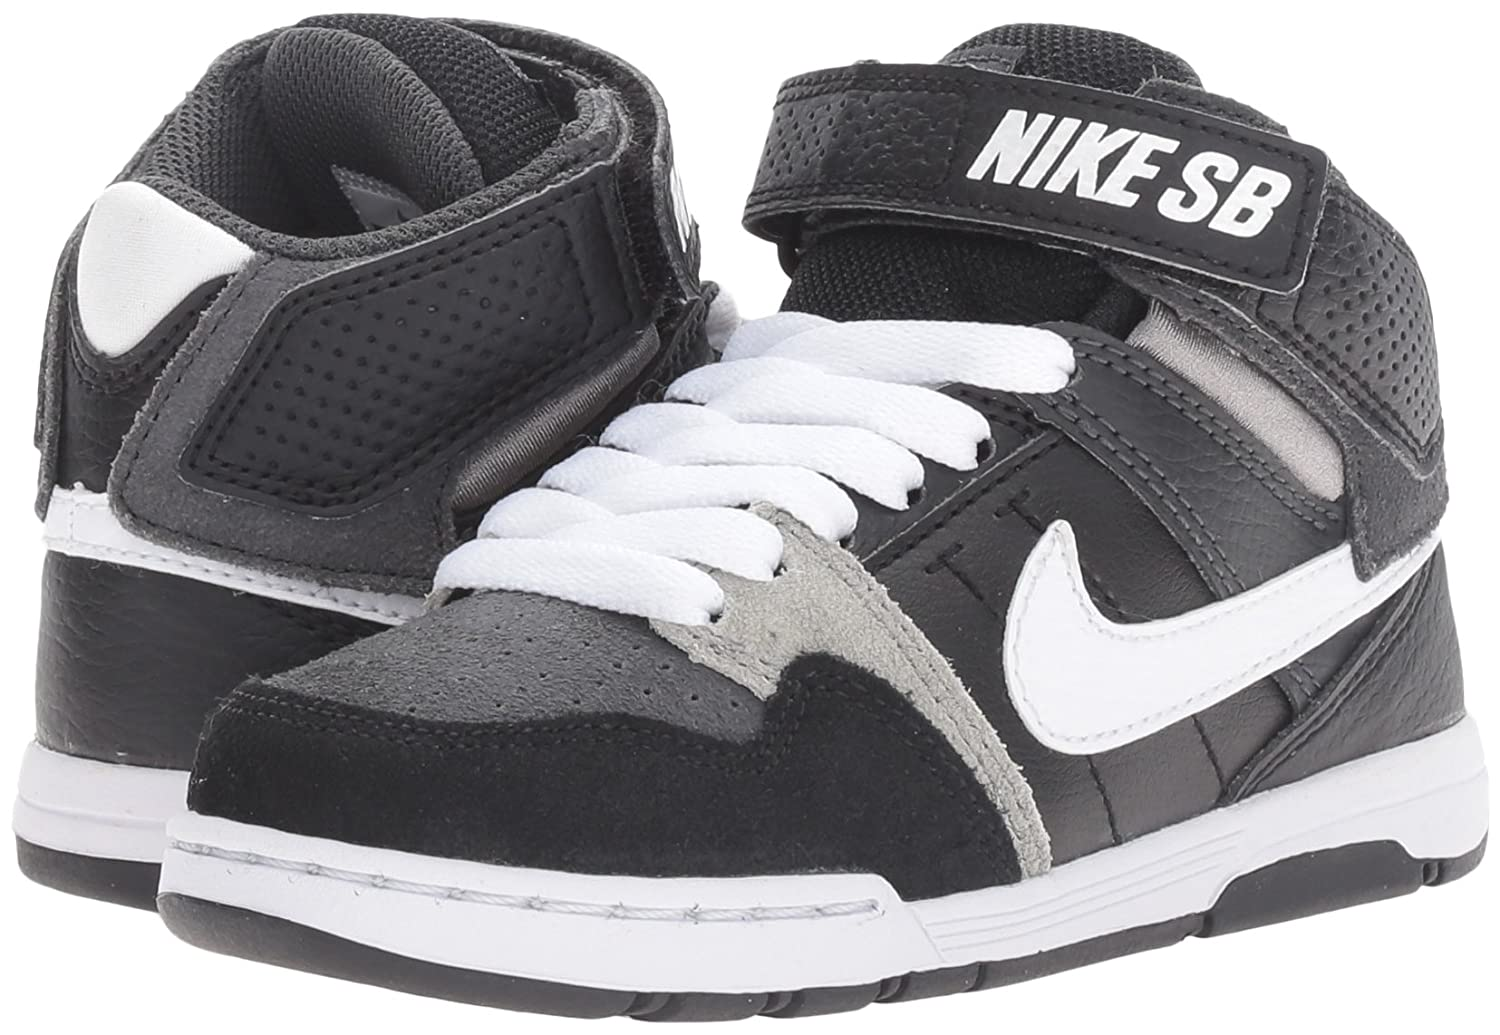 the best attitude 507eb ce91f Zapatillas NIKE Kids Mogan Mid 2 Jr Skateboarding Antracita   Blanco   Negro    Gris Mediano